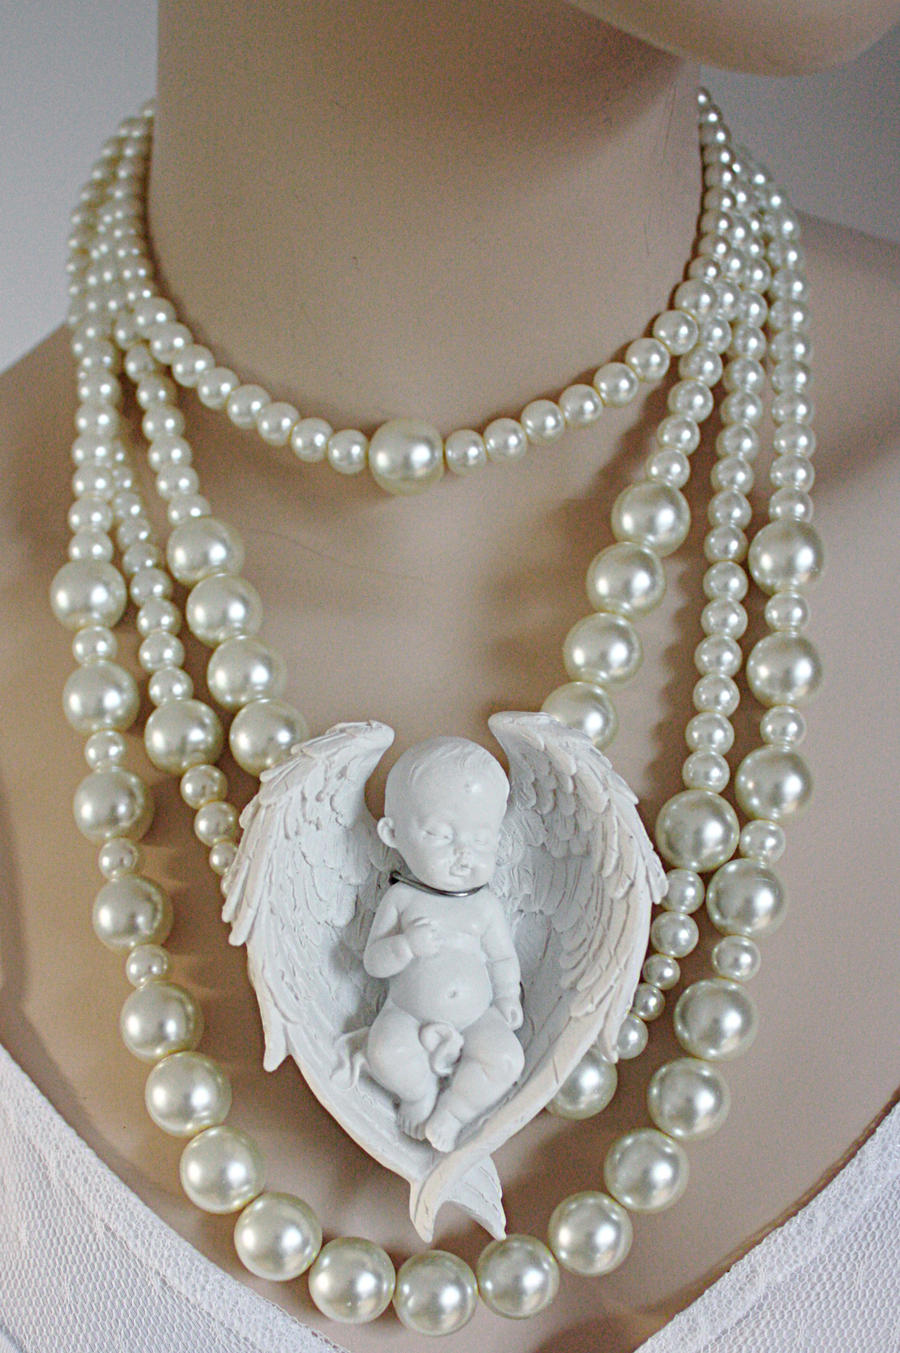 Cherub pearl necklace by Pinkabsinthe